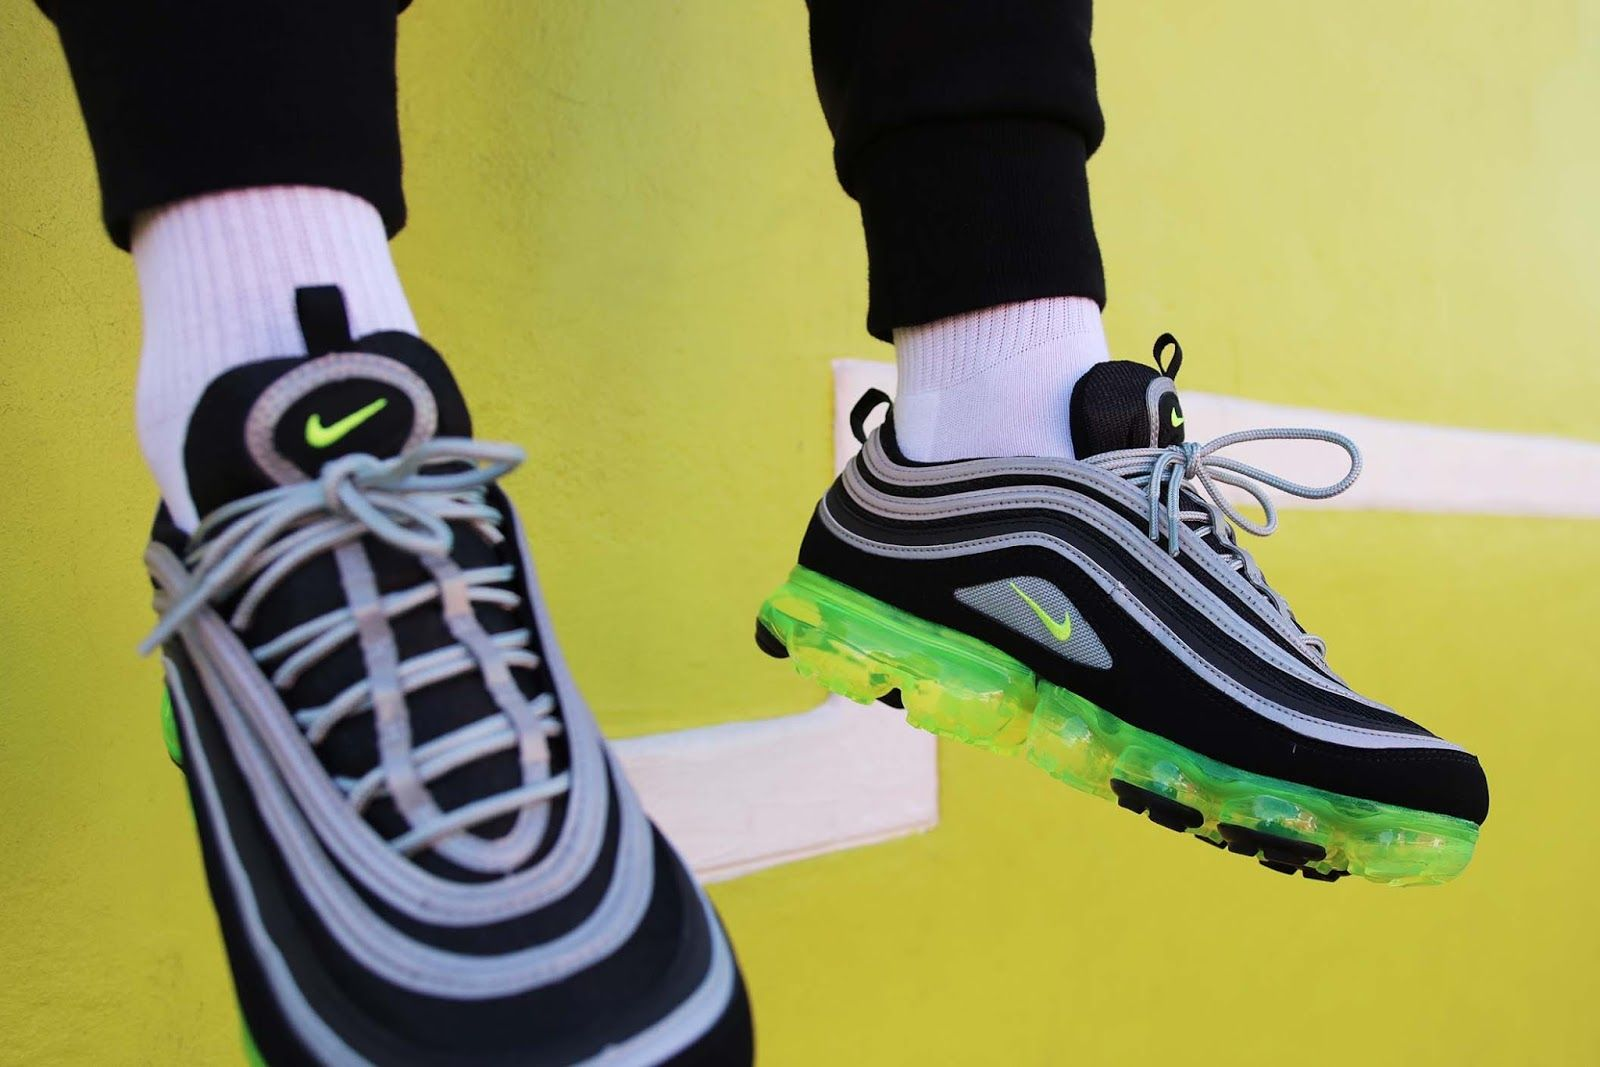 timeless design 1d85b ce653 The hybrid Nike Air VaporMax 97 is a new style that is releasing in the  classic Neon colourway which takes inspiration from the Air Max 9.